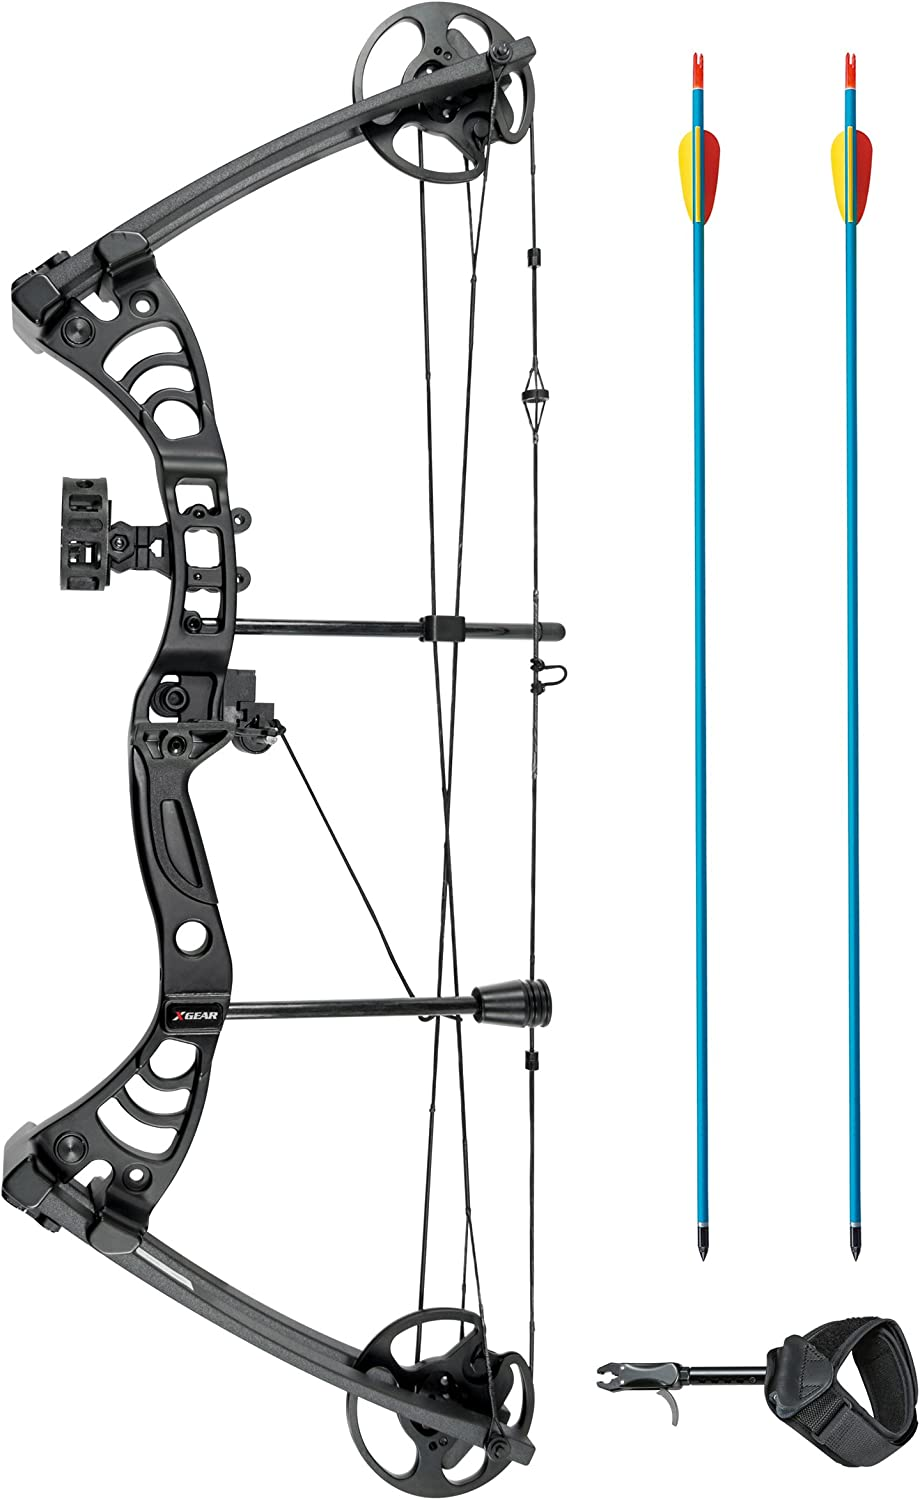 XGear Right Hand Compound Bow 30-55lbs 19 -29 Archery Hunting Equipment with Max Speed 296fps